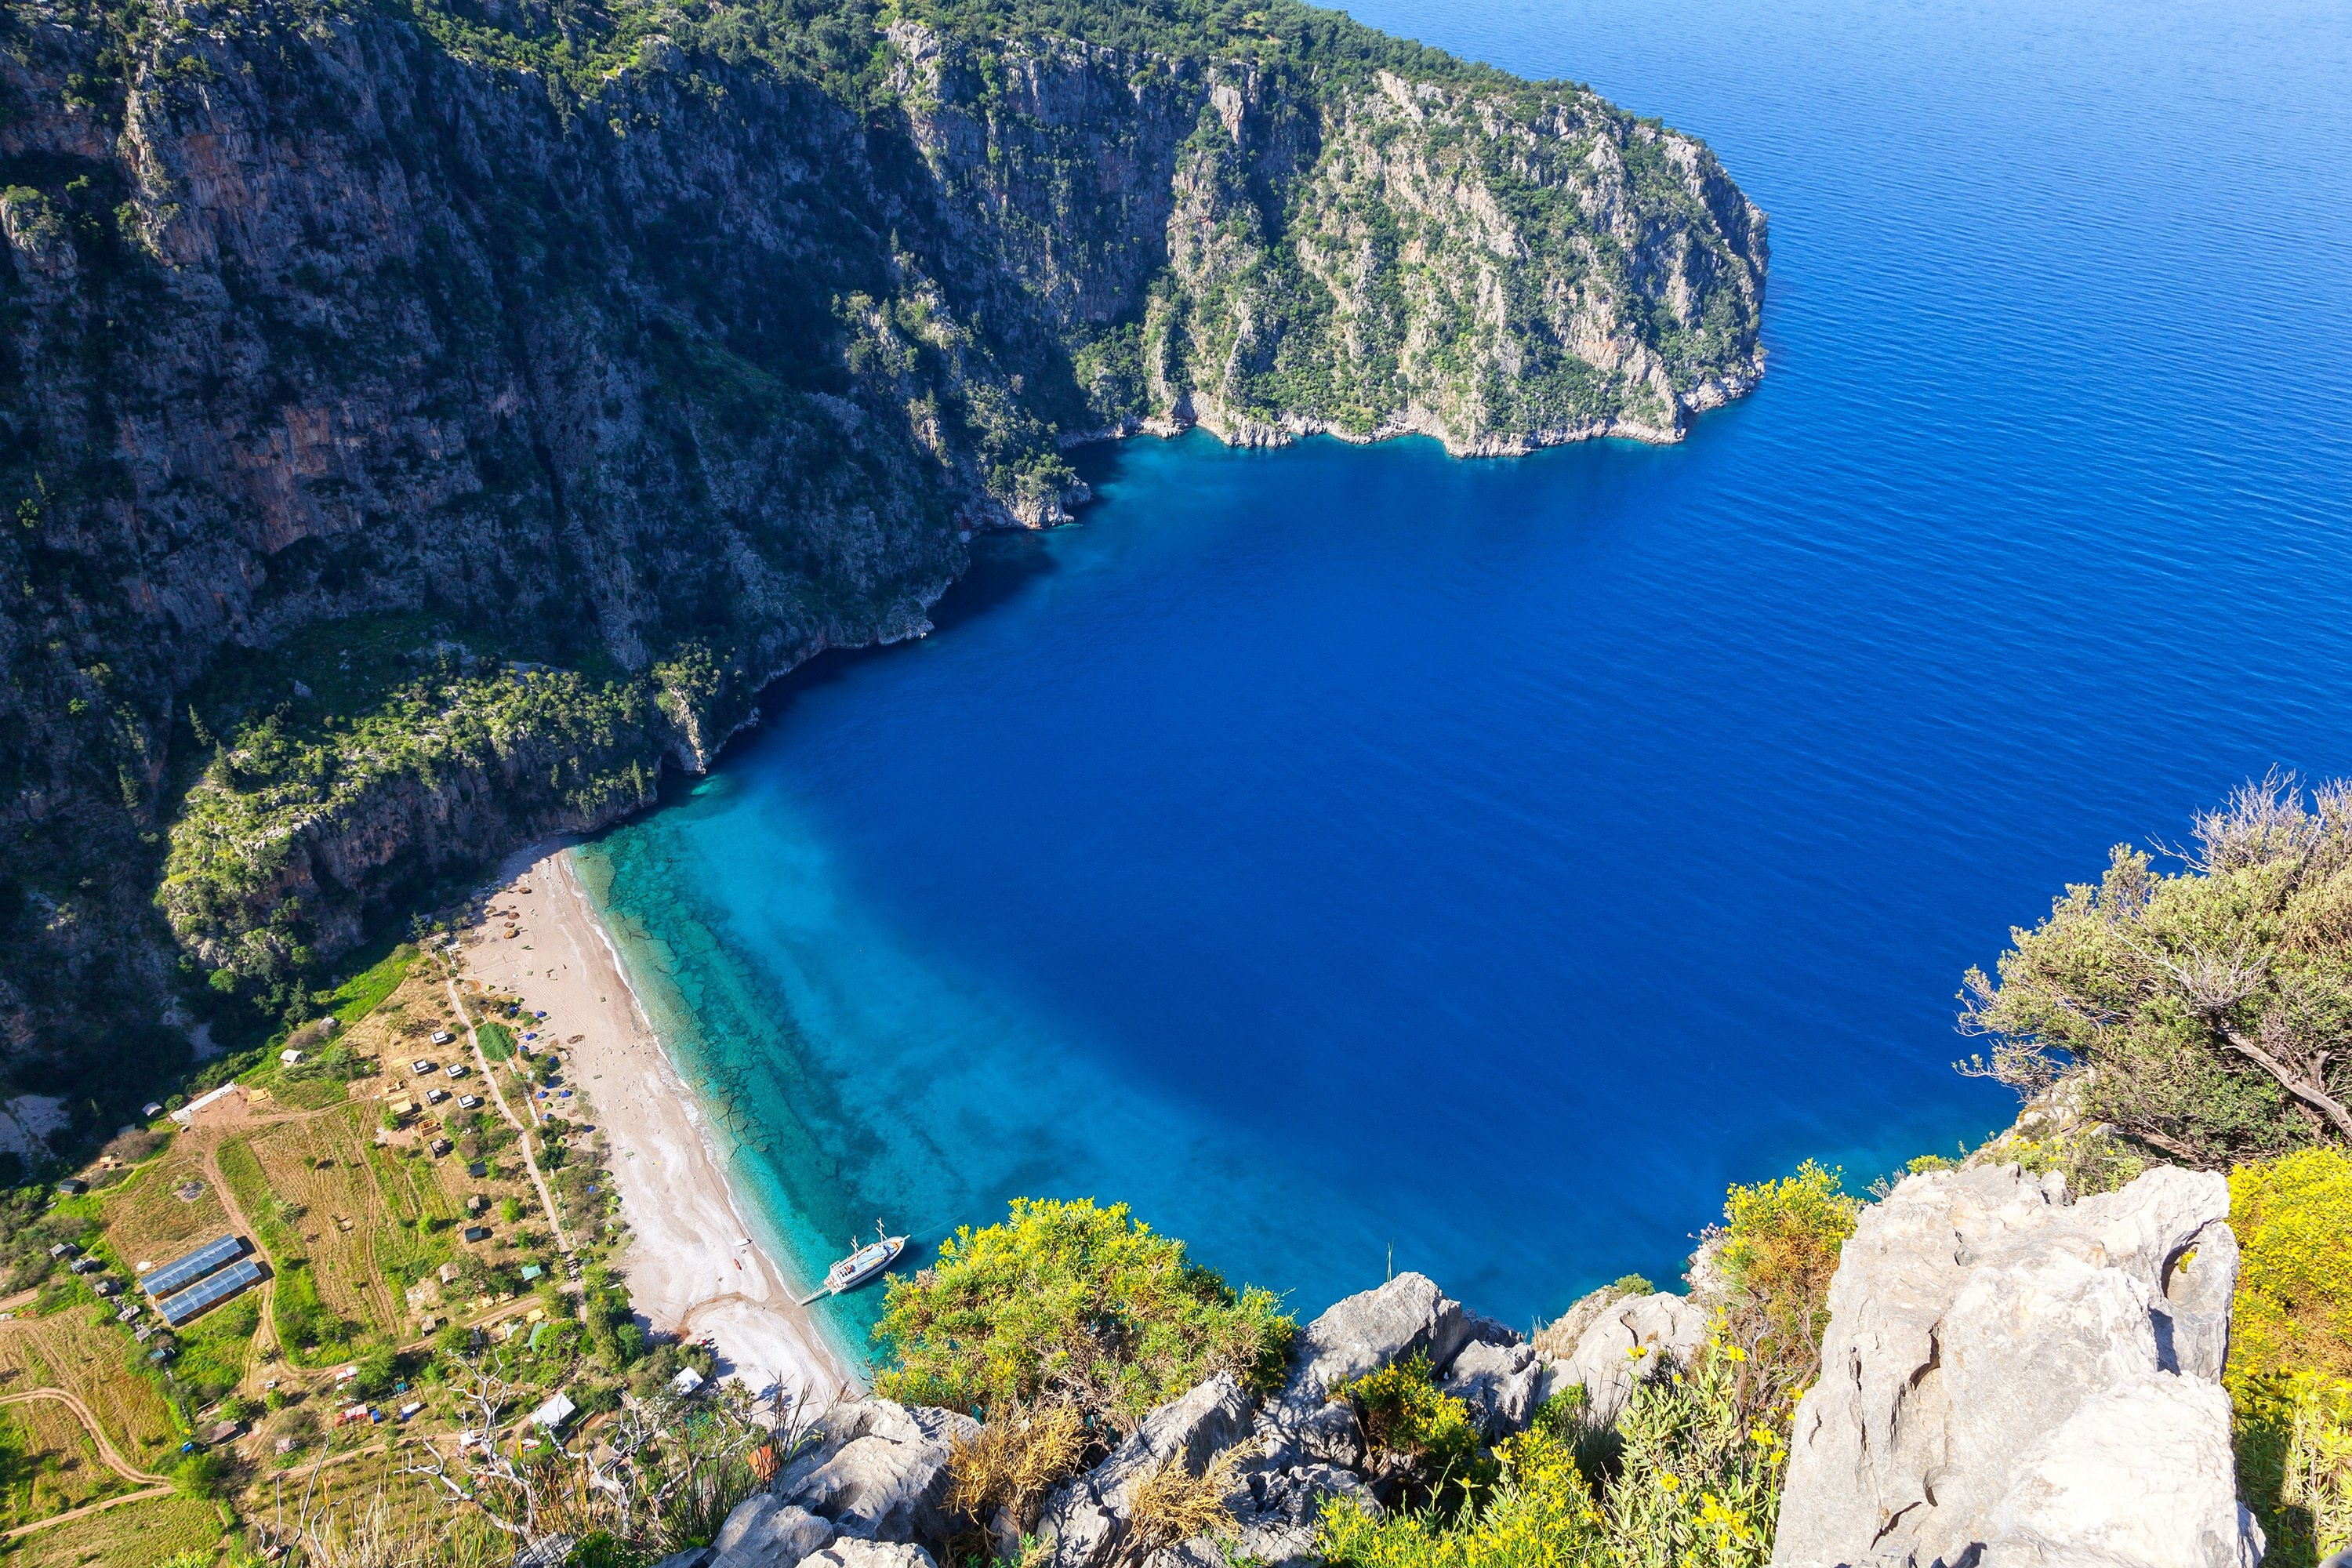 Kabak Beach offers visitors a secluded dip in the waters of the Mediterranean. (Shutterstock Photo)